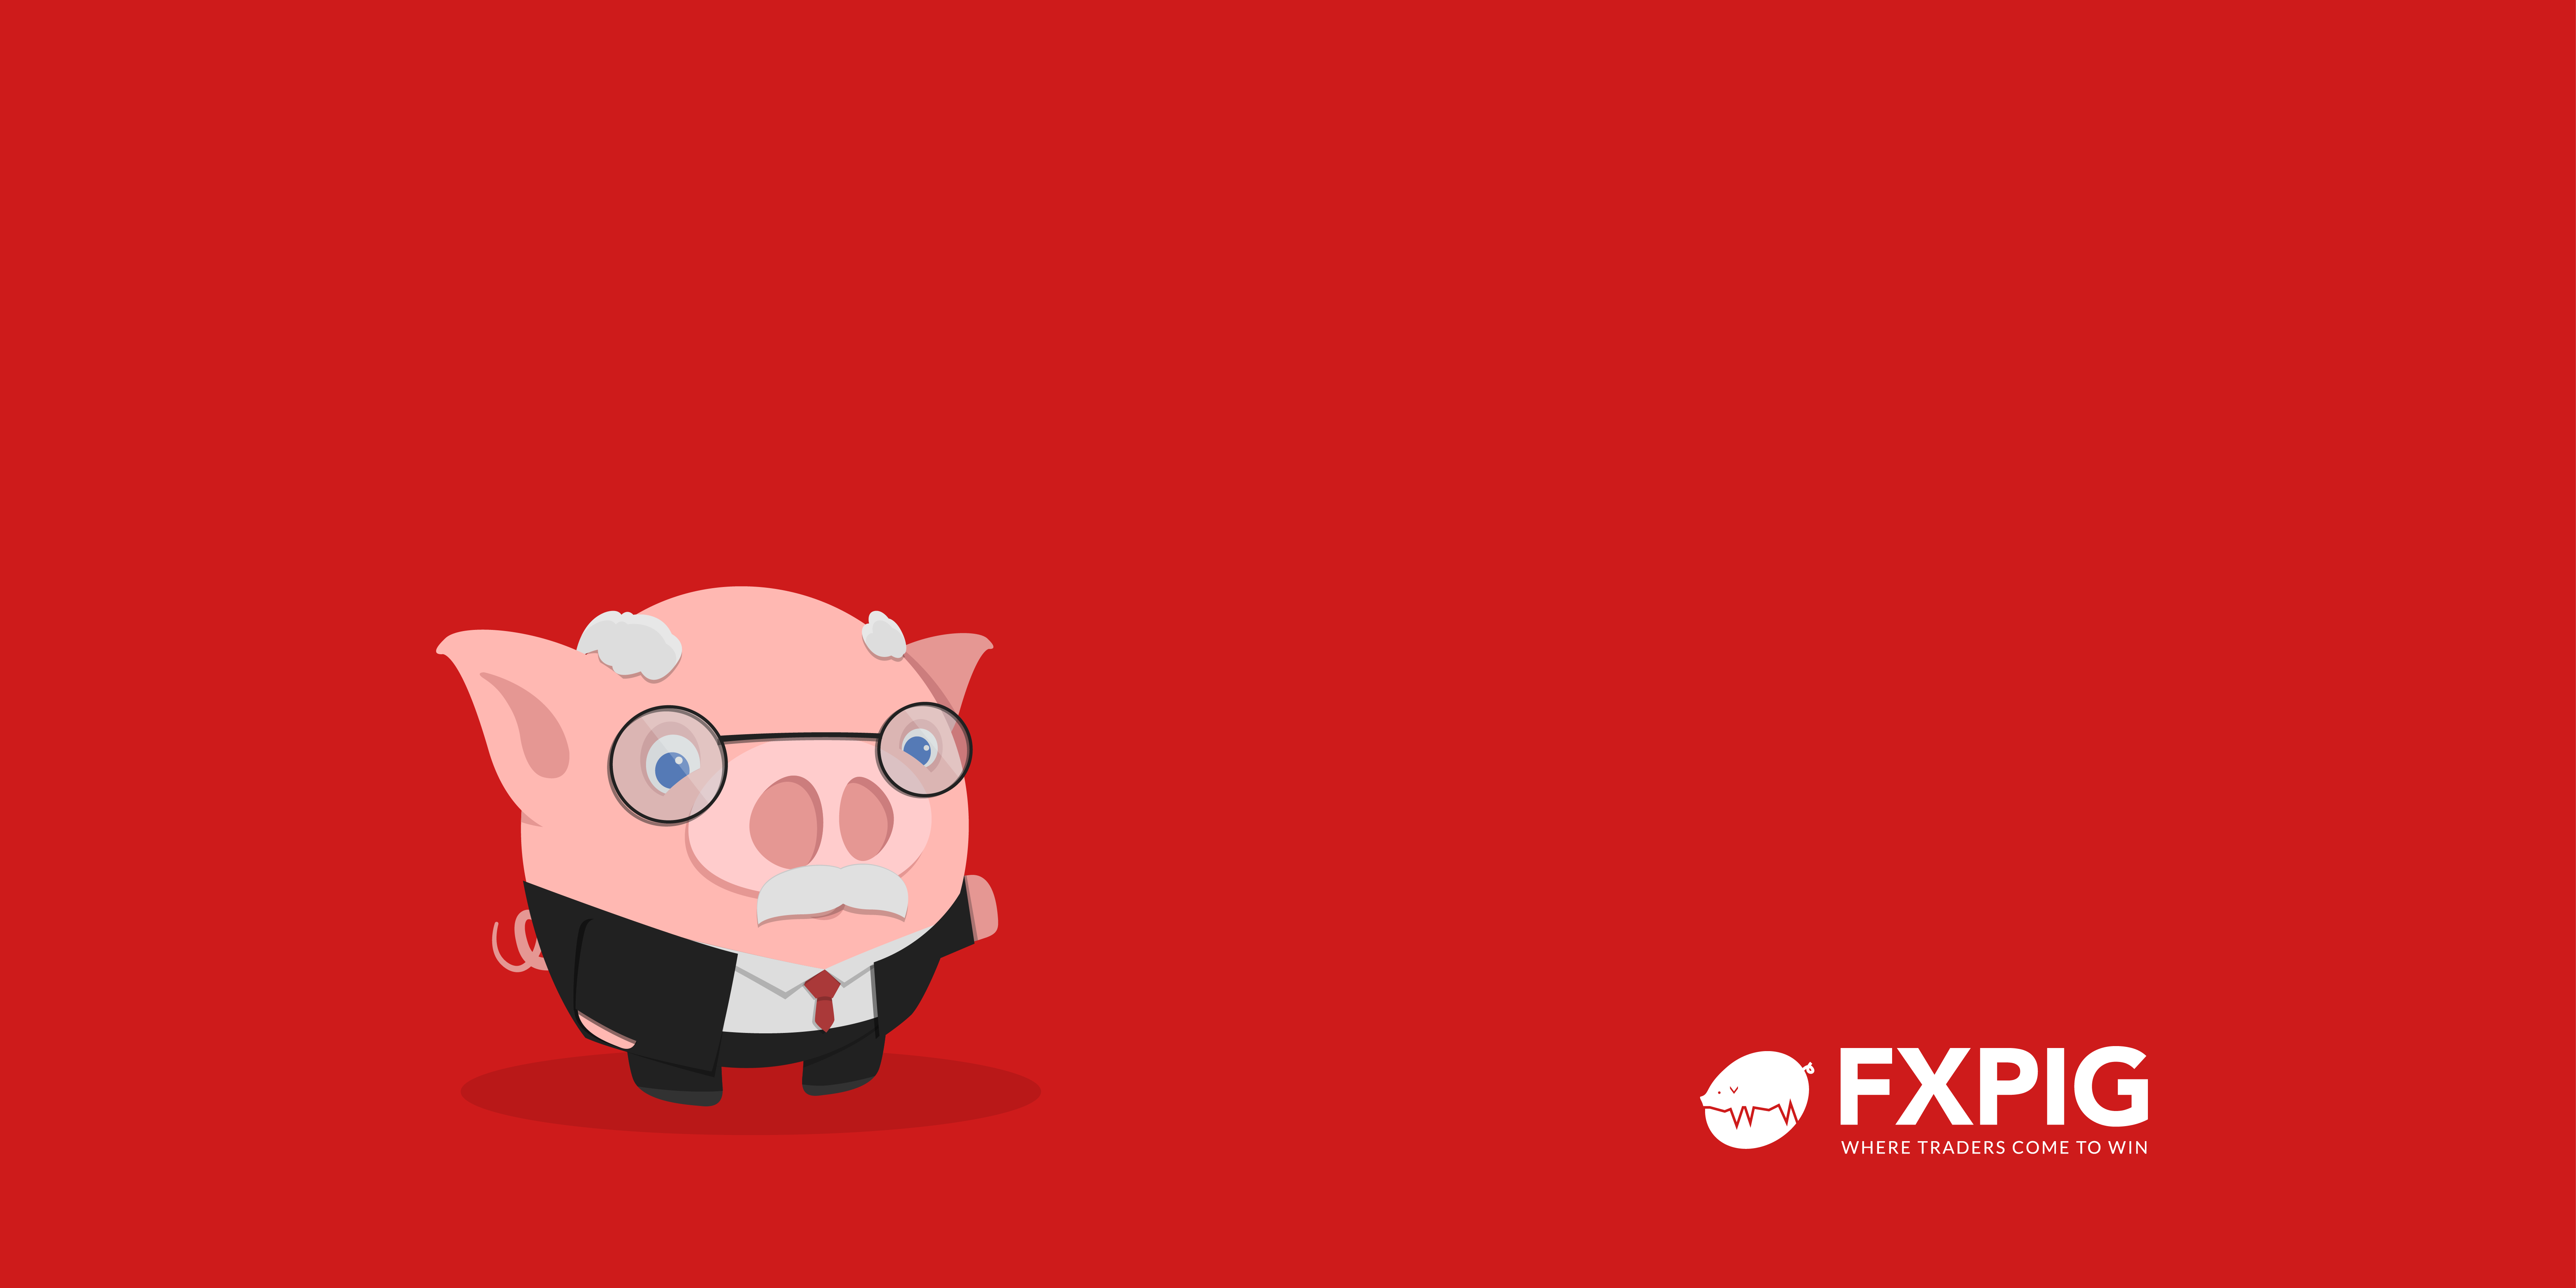 Forex_Trading-Wisdom_Fx_Trader_FXPIG_You-are-what-you-do